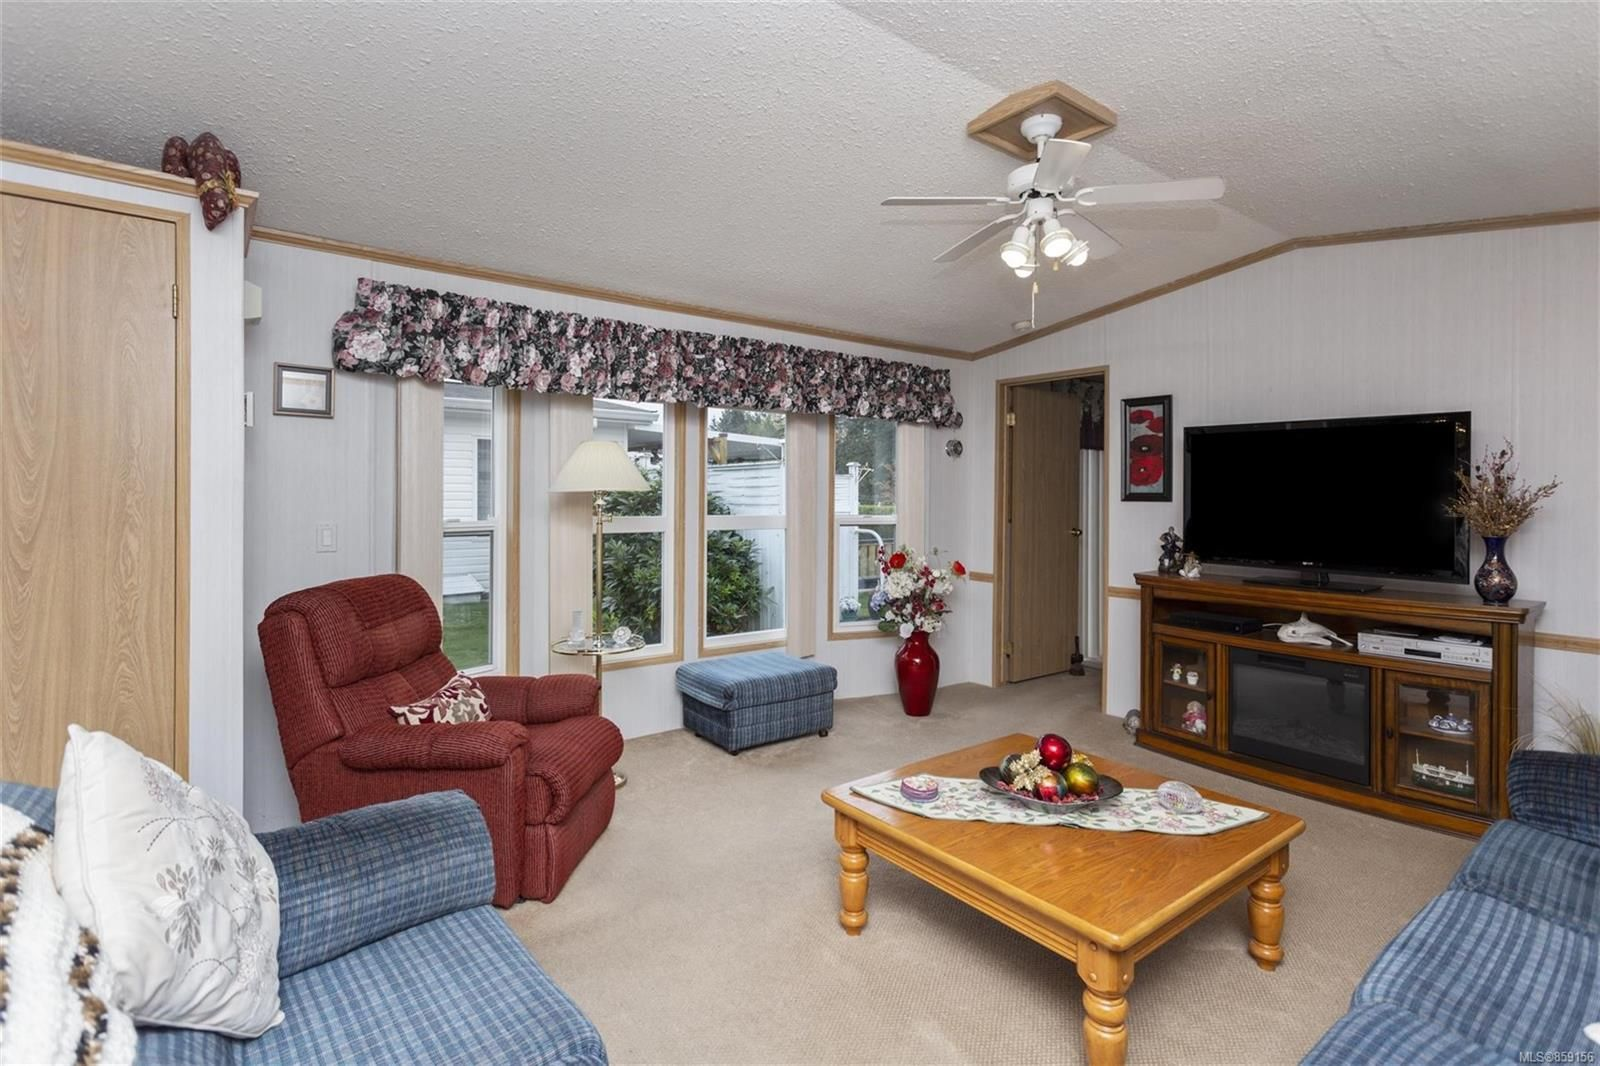 Photo 4: Photos: 1059 Collier Cres in : Na University District Manufactured Home for sale (Nanaimo)  : MLS®# 859156